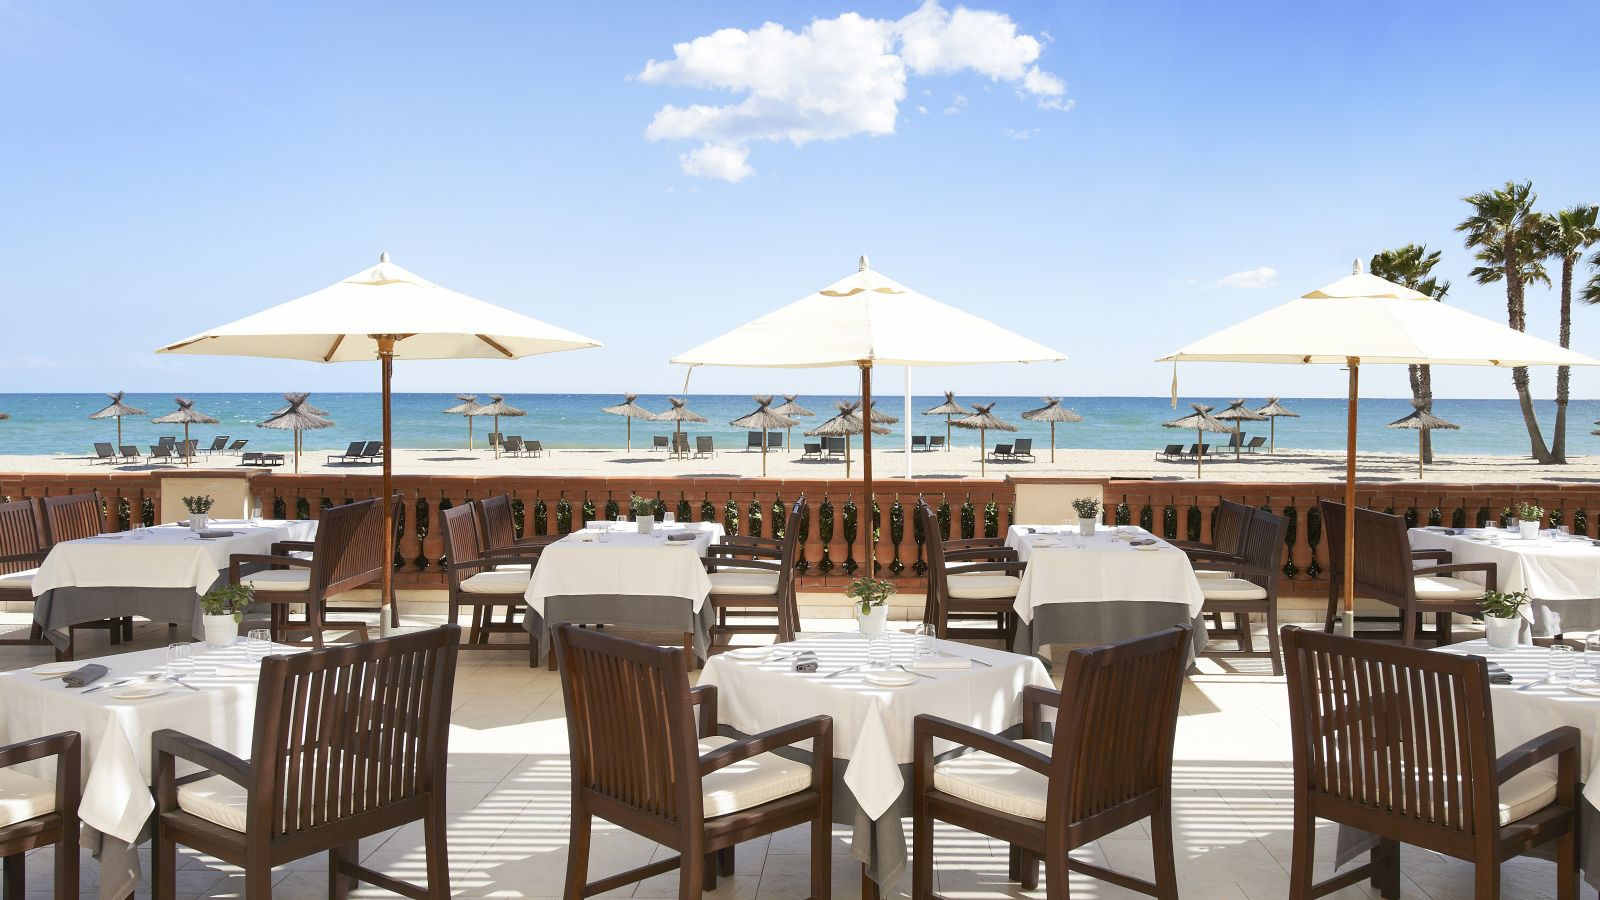 Restaurant with terrace overlooking the beach in El Vendrell